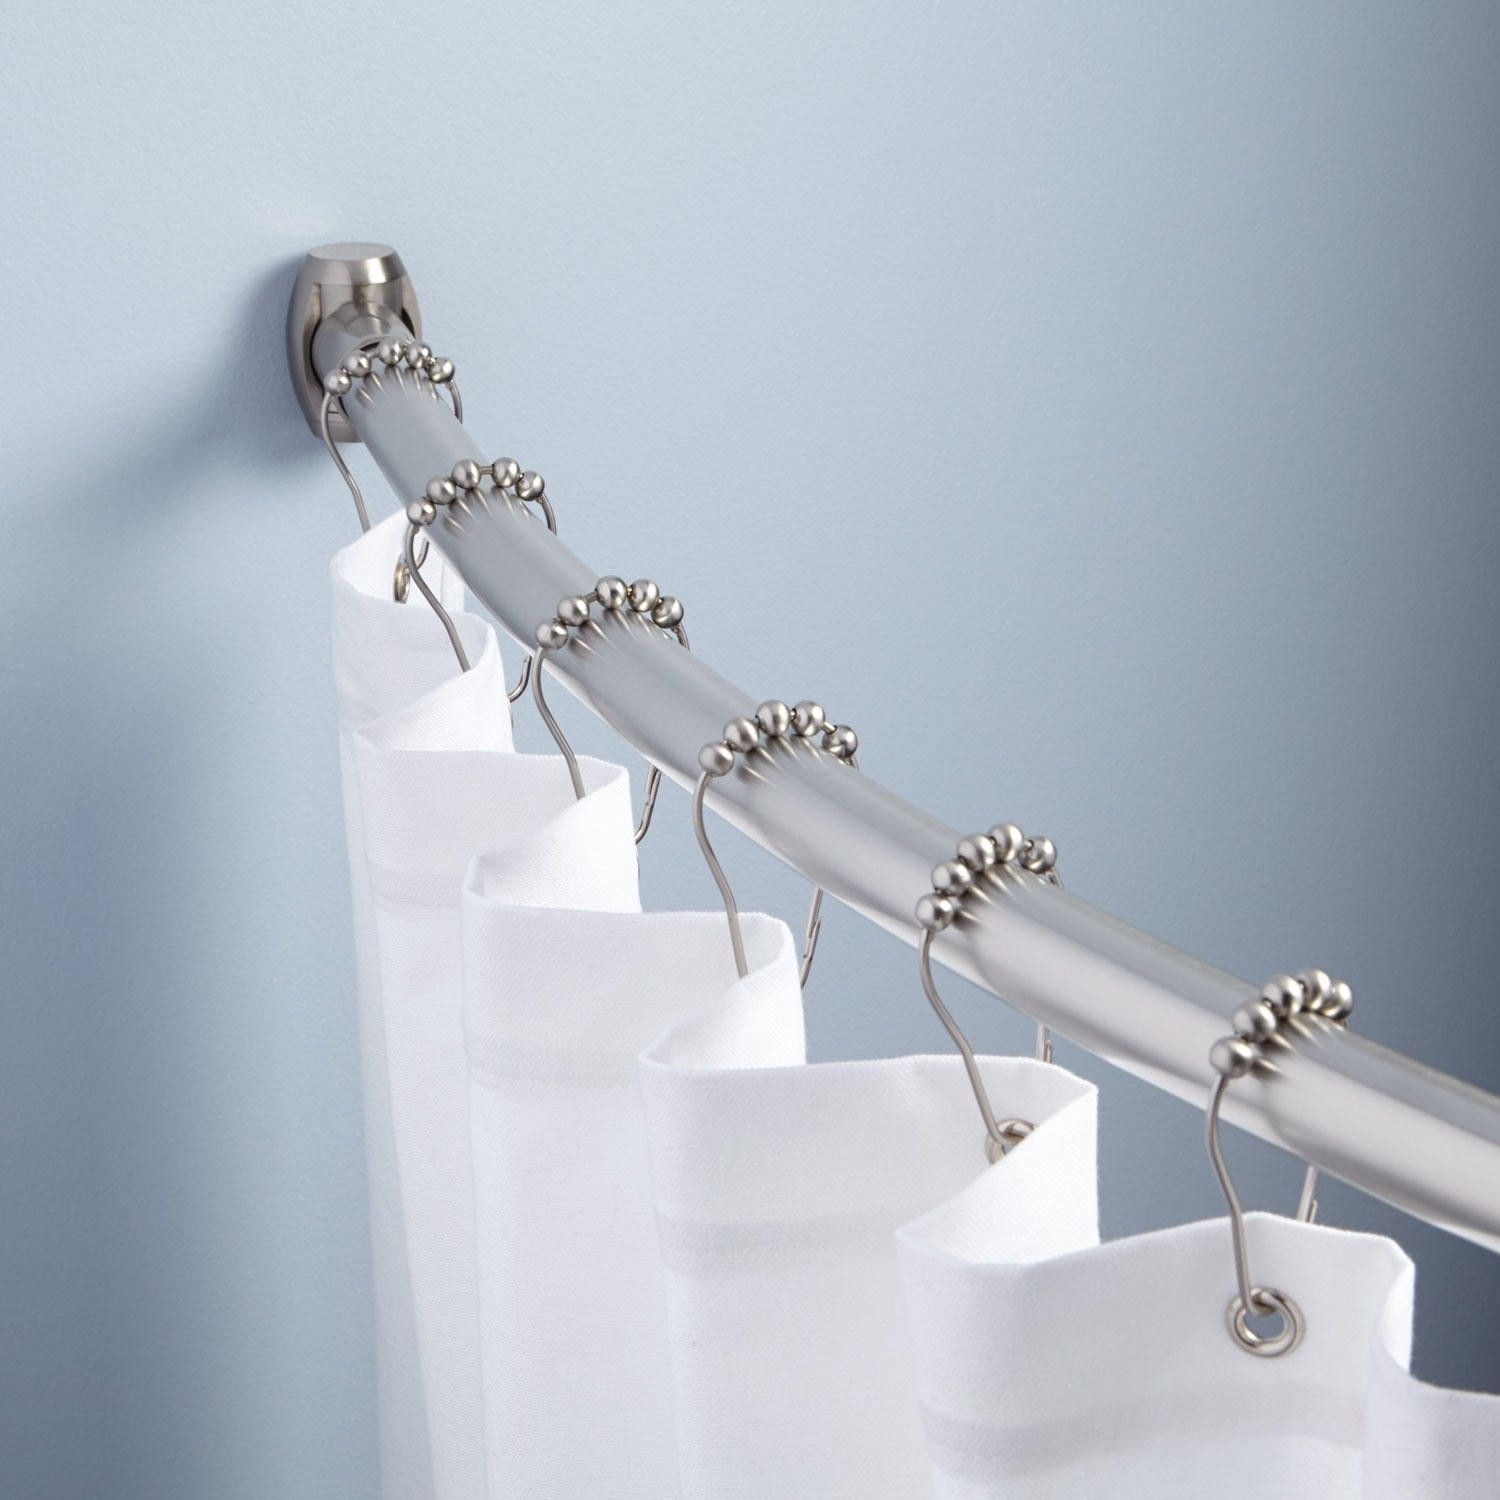 Curved Shower Curtain Rod | Shower curtain rods, Bath and Small ...